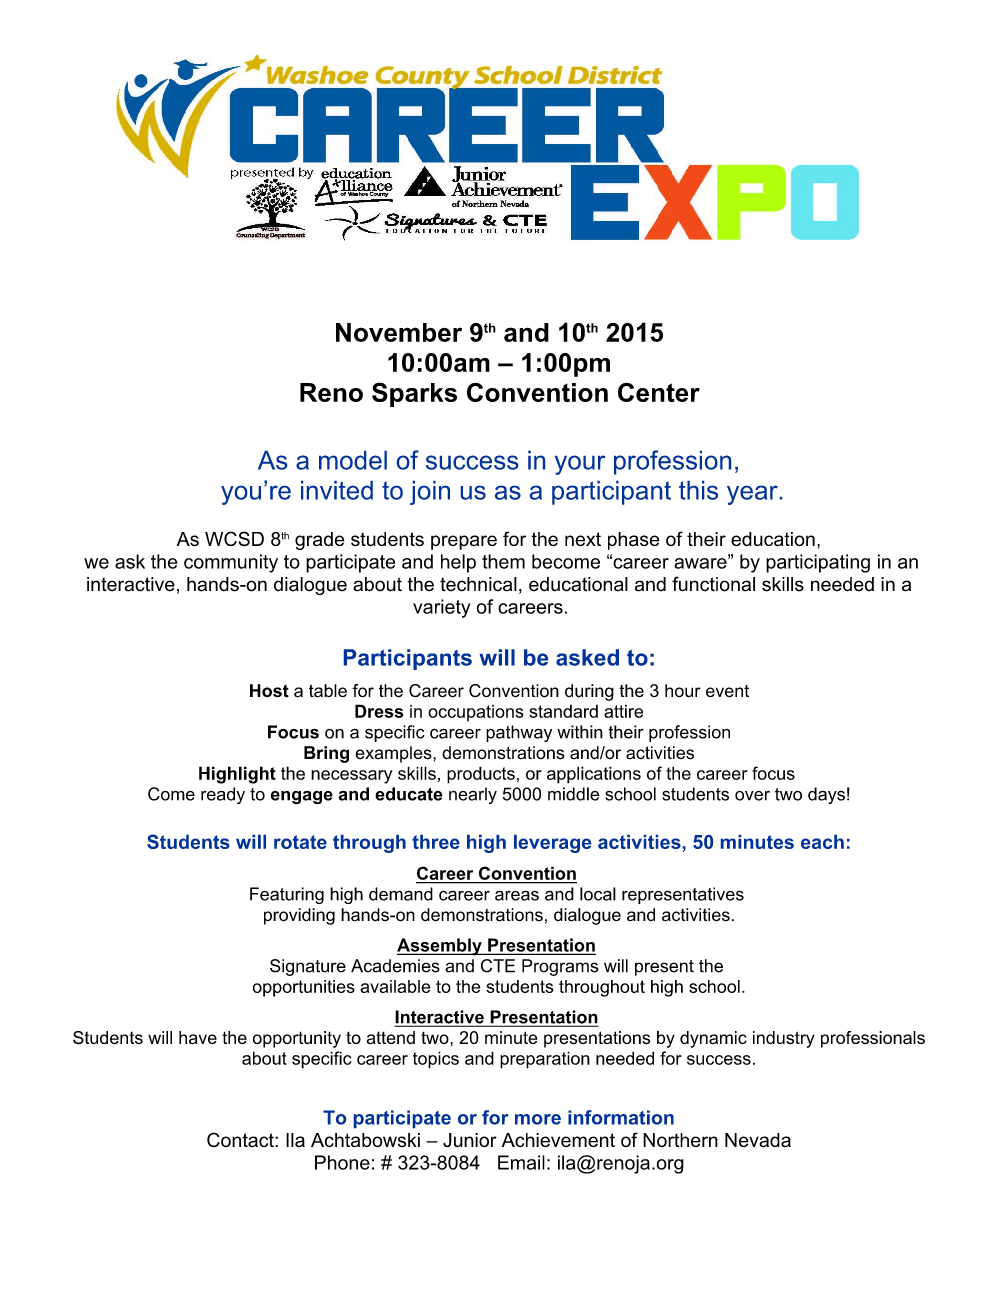 Visit NClab at the Upcoming WCSD Career Expo! | NCLab